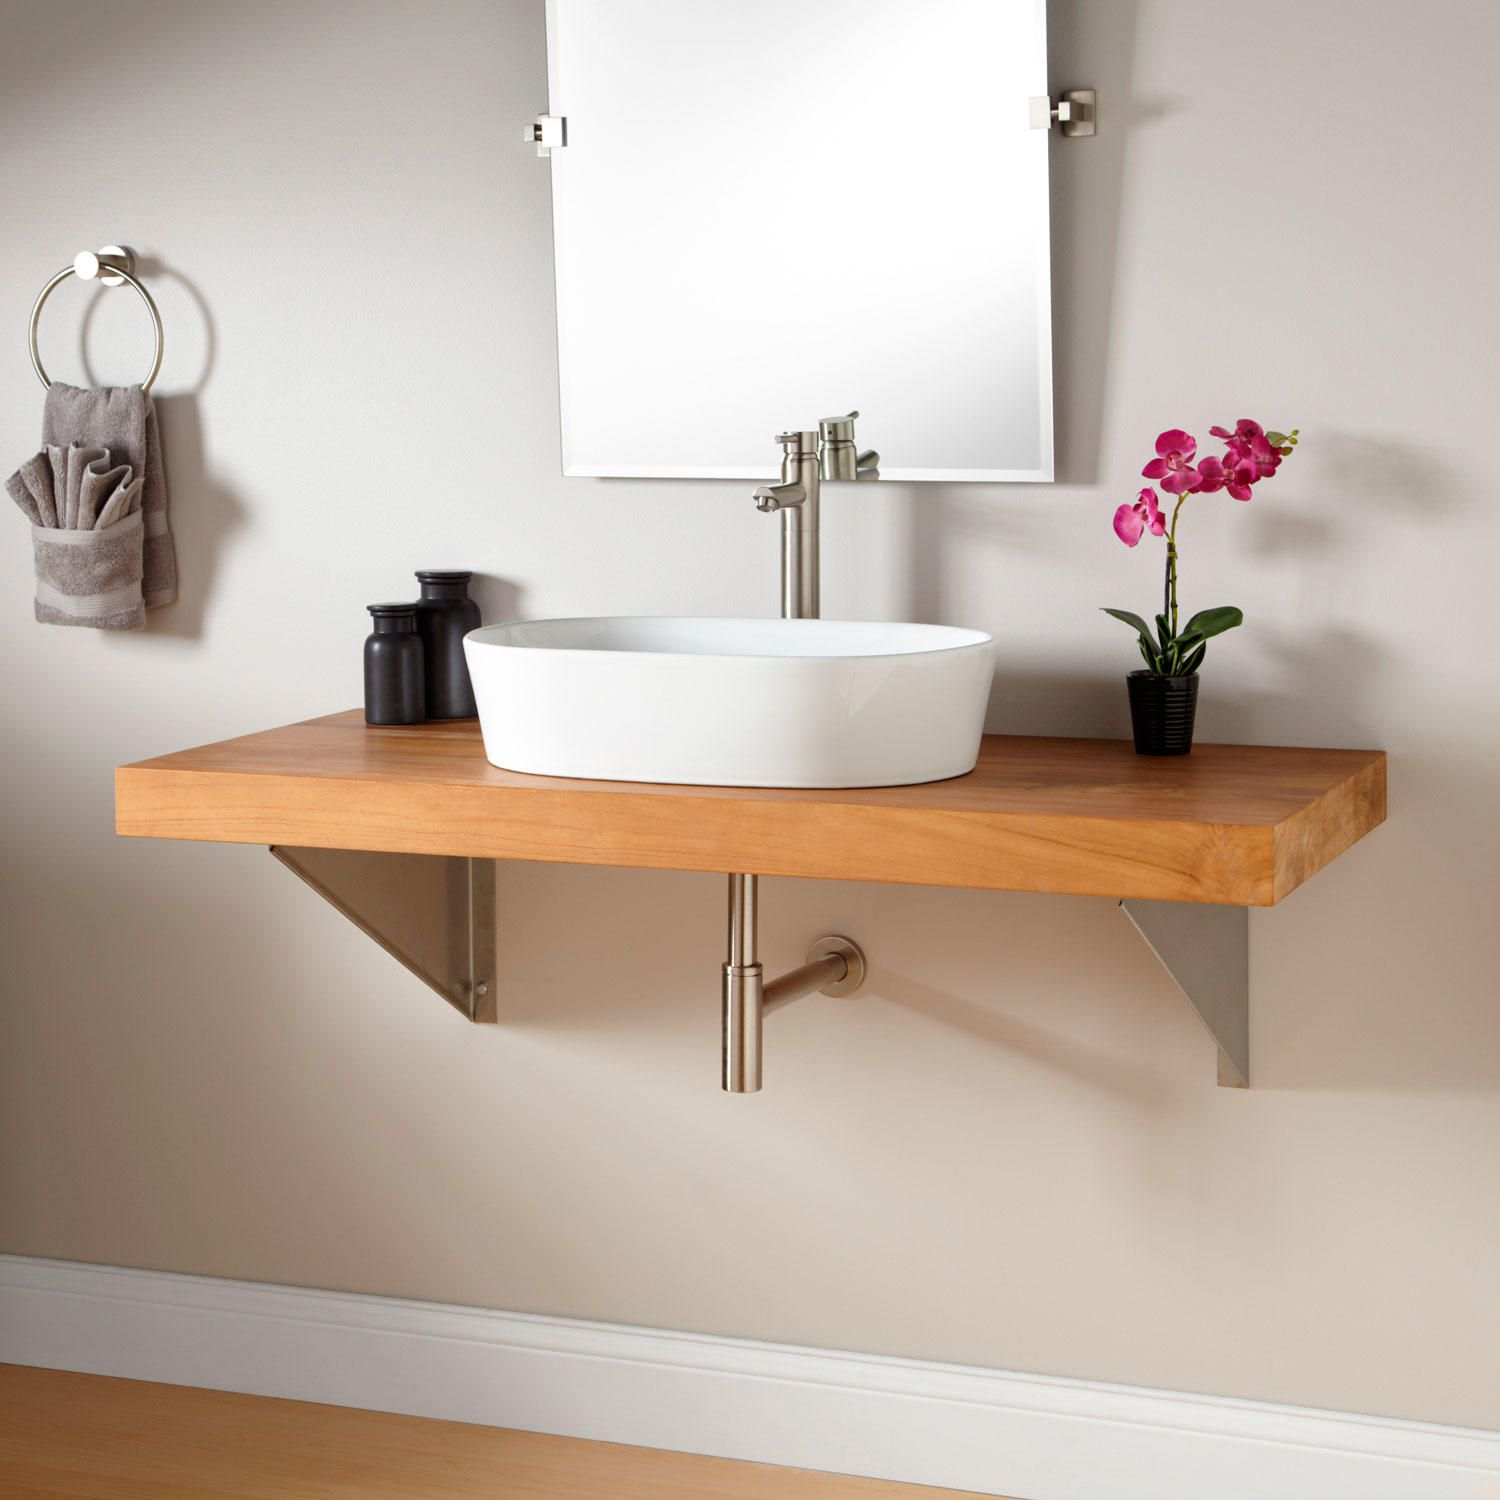 Wall Mount Sink Brackets Bathroom 18 Vanity Vessel